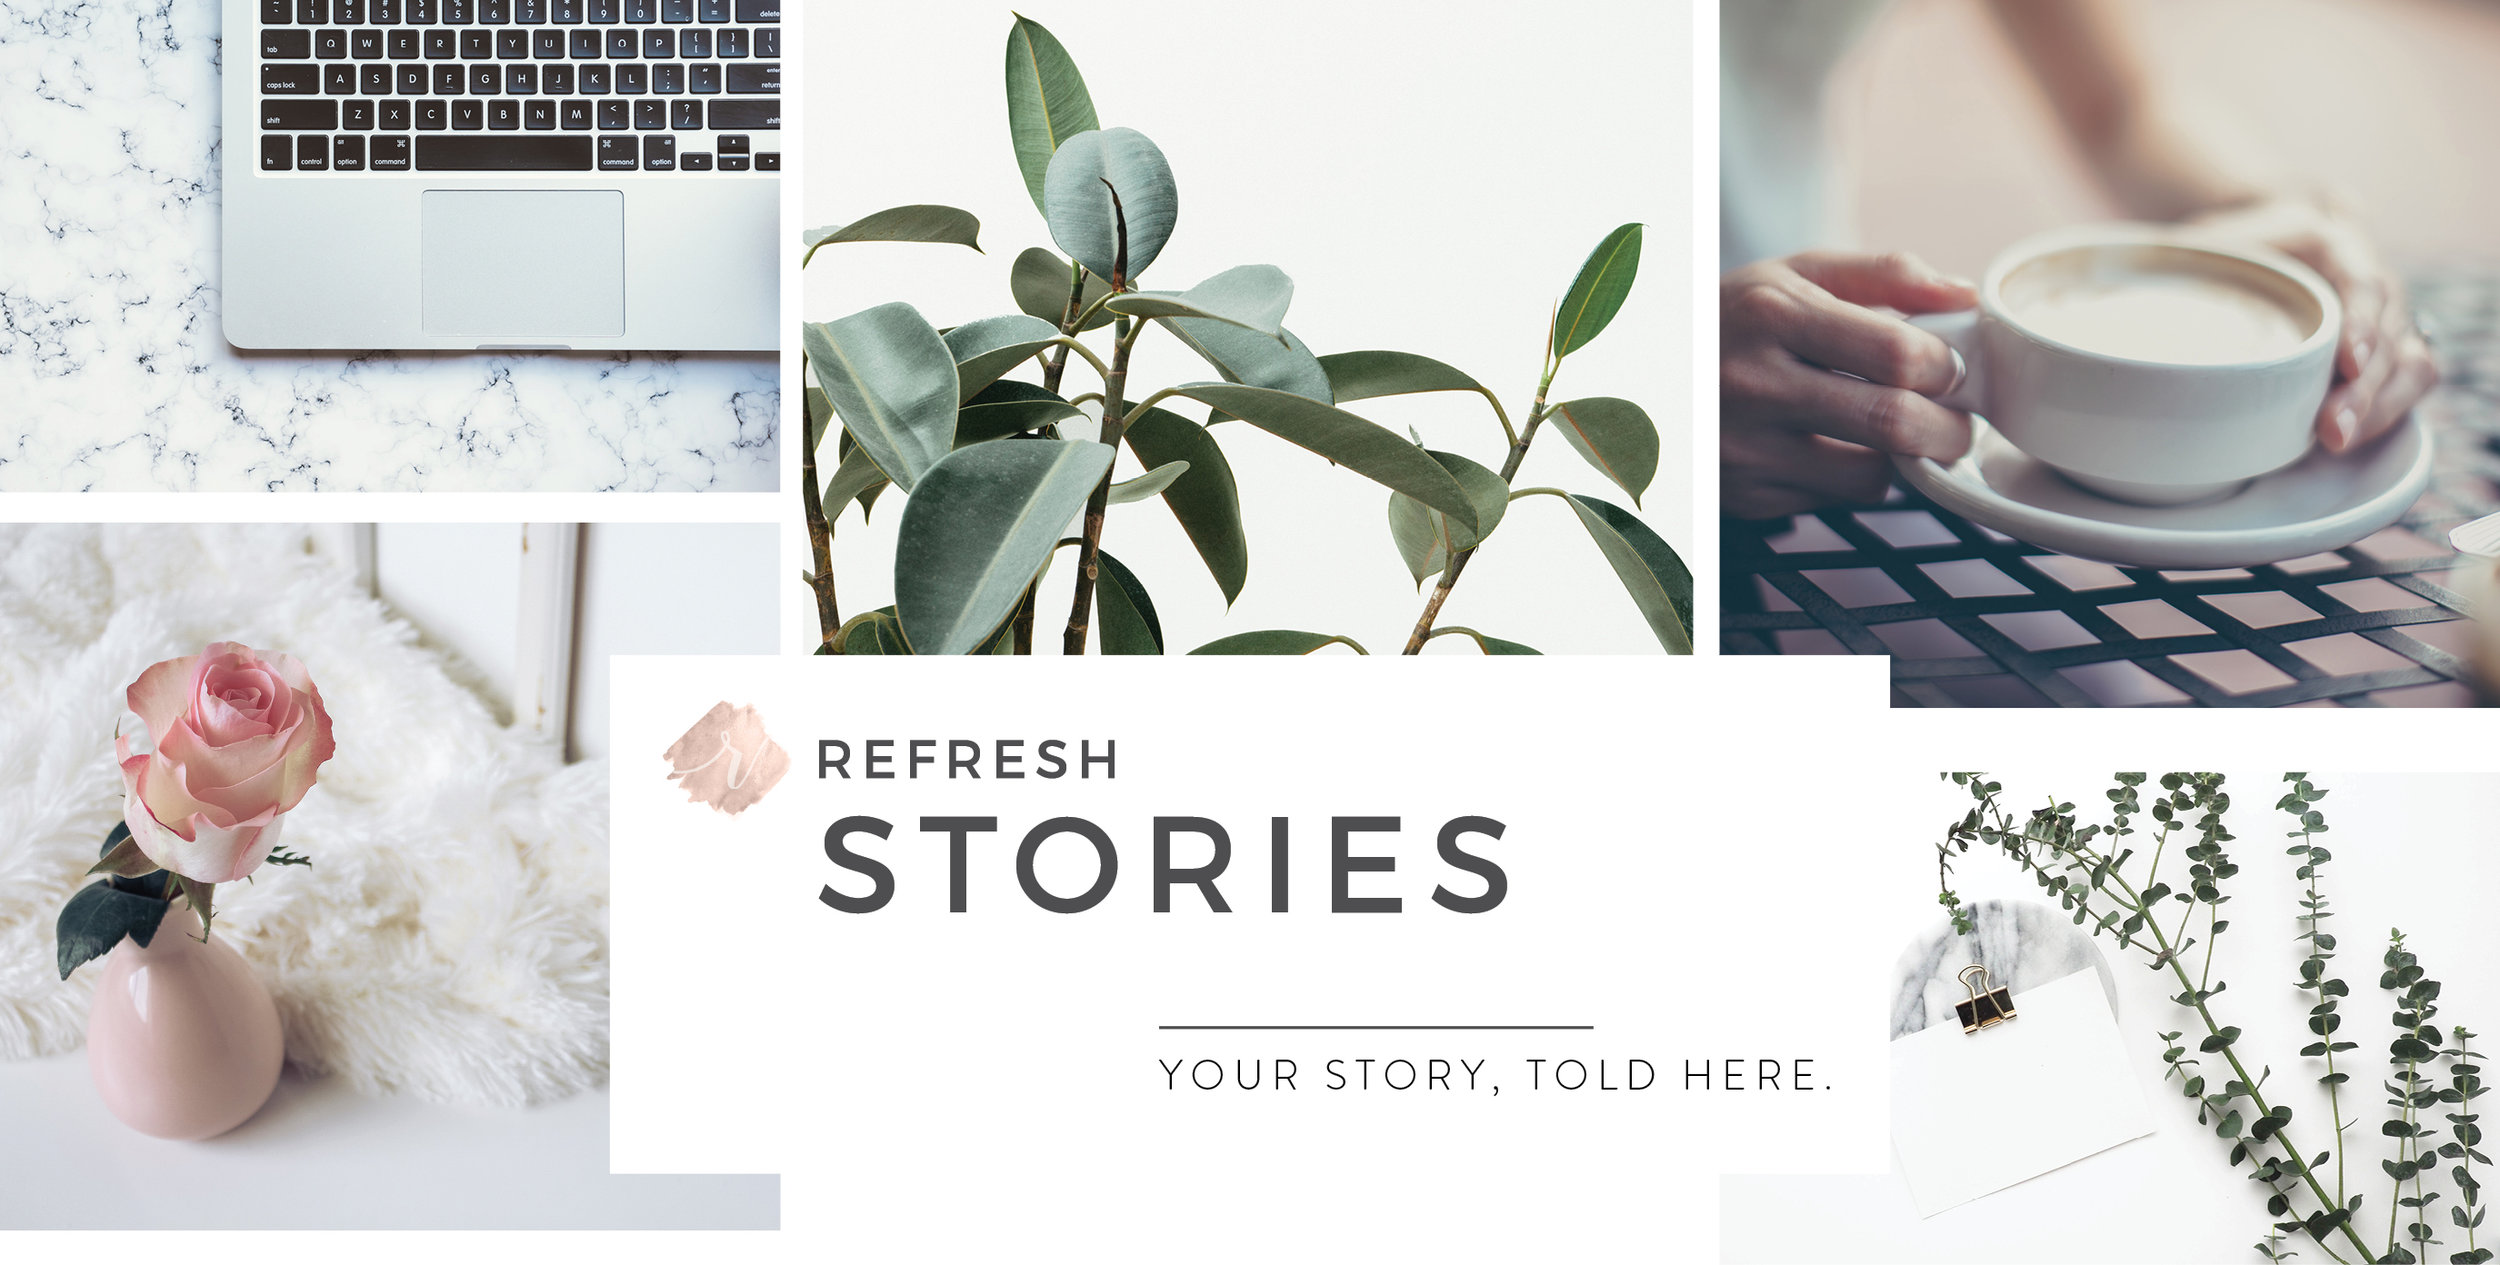 Refresh_Stories_Header.jpg